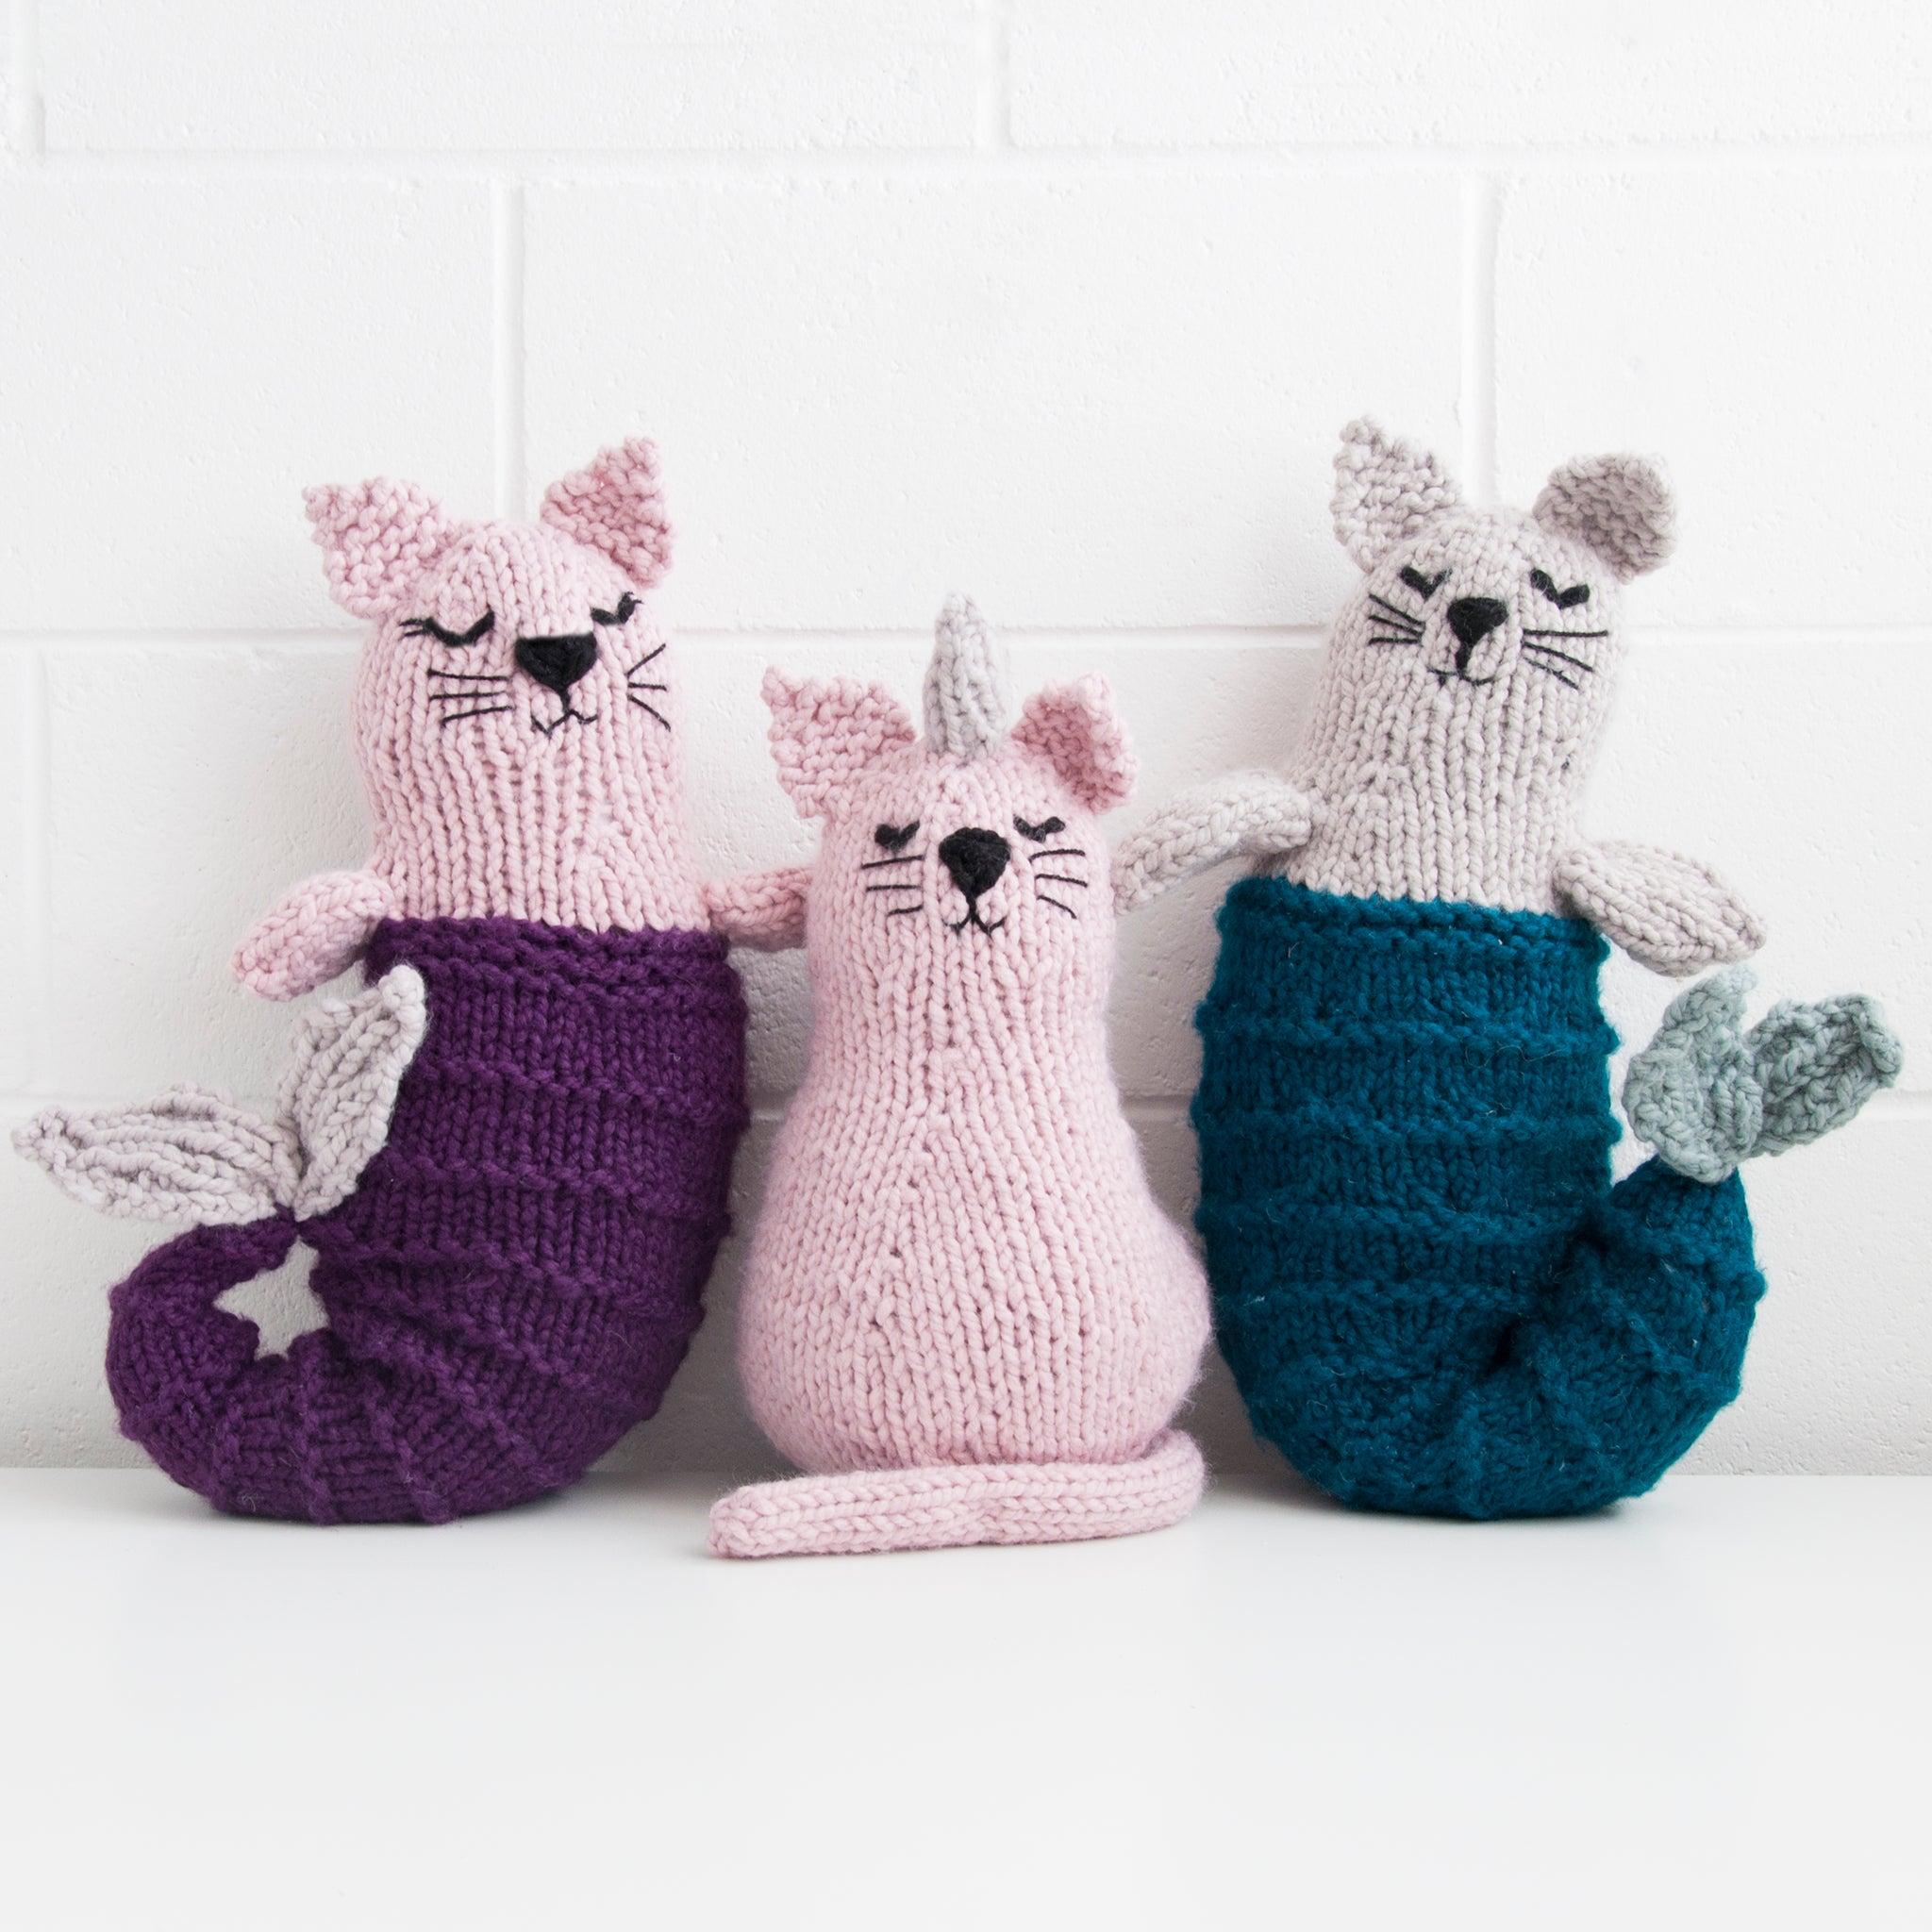 Mermaid Cat Knitting Kit